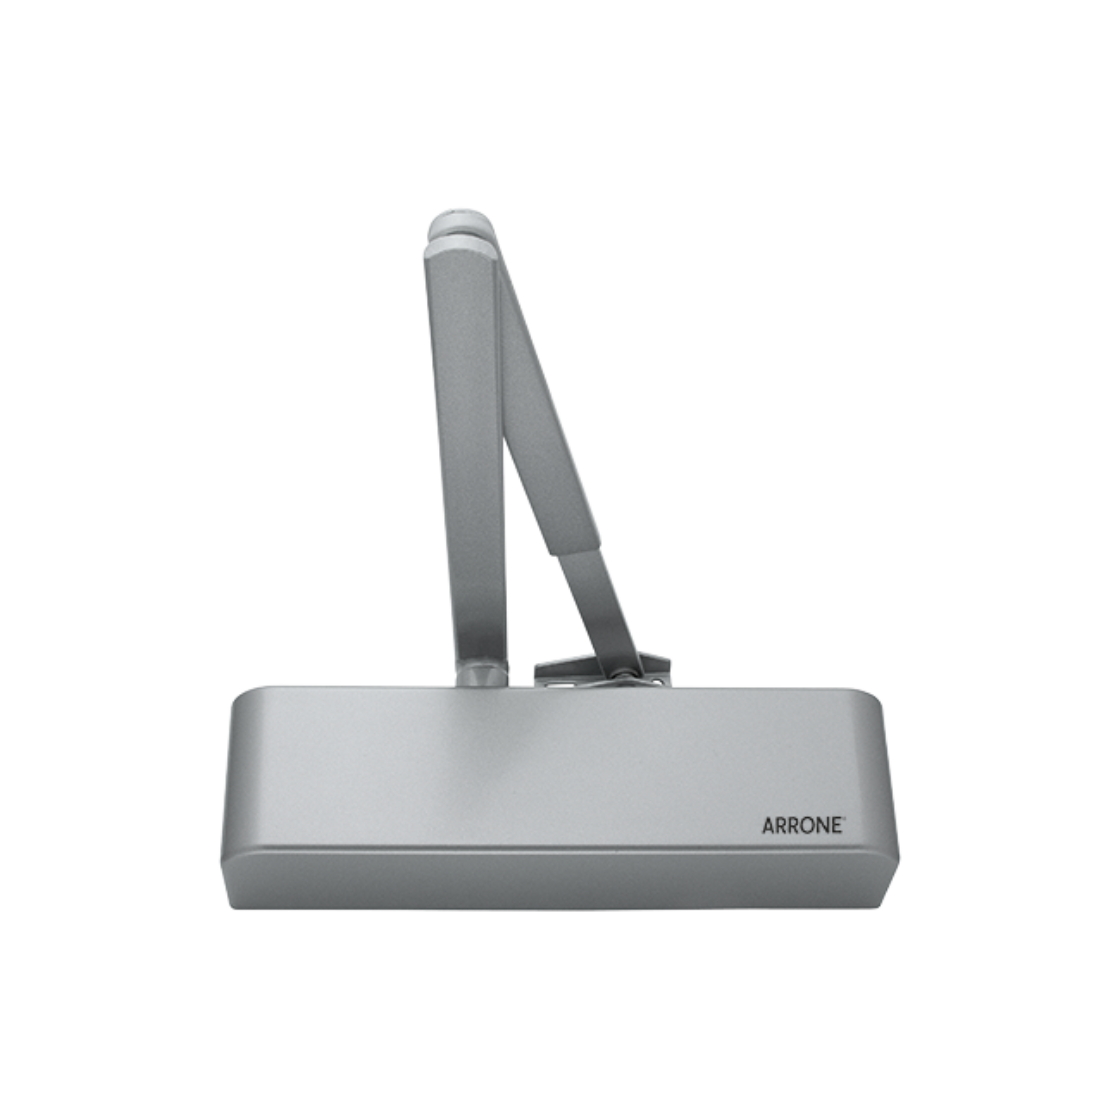 Door Closer Size2 - 4 Overhead - Hoppe-Arrone® AR1500-SE/SE Silver/Grey